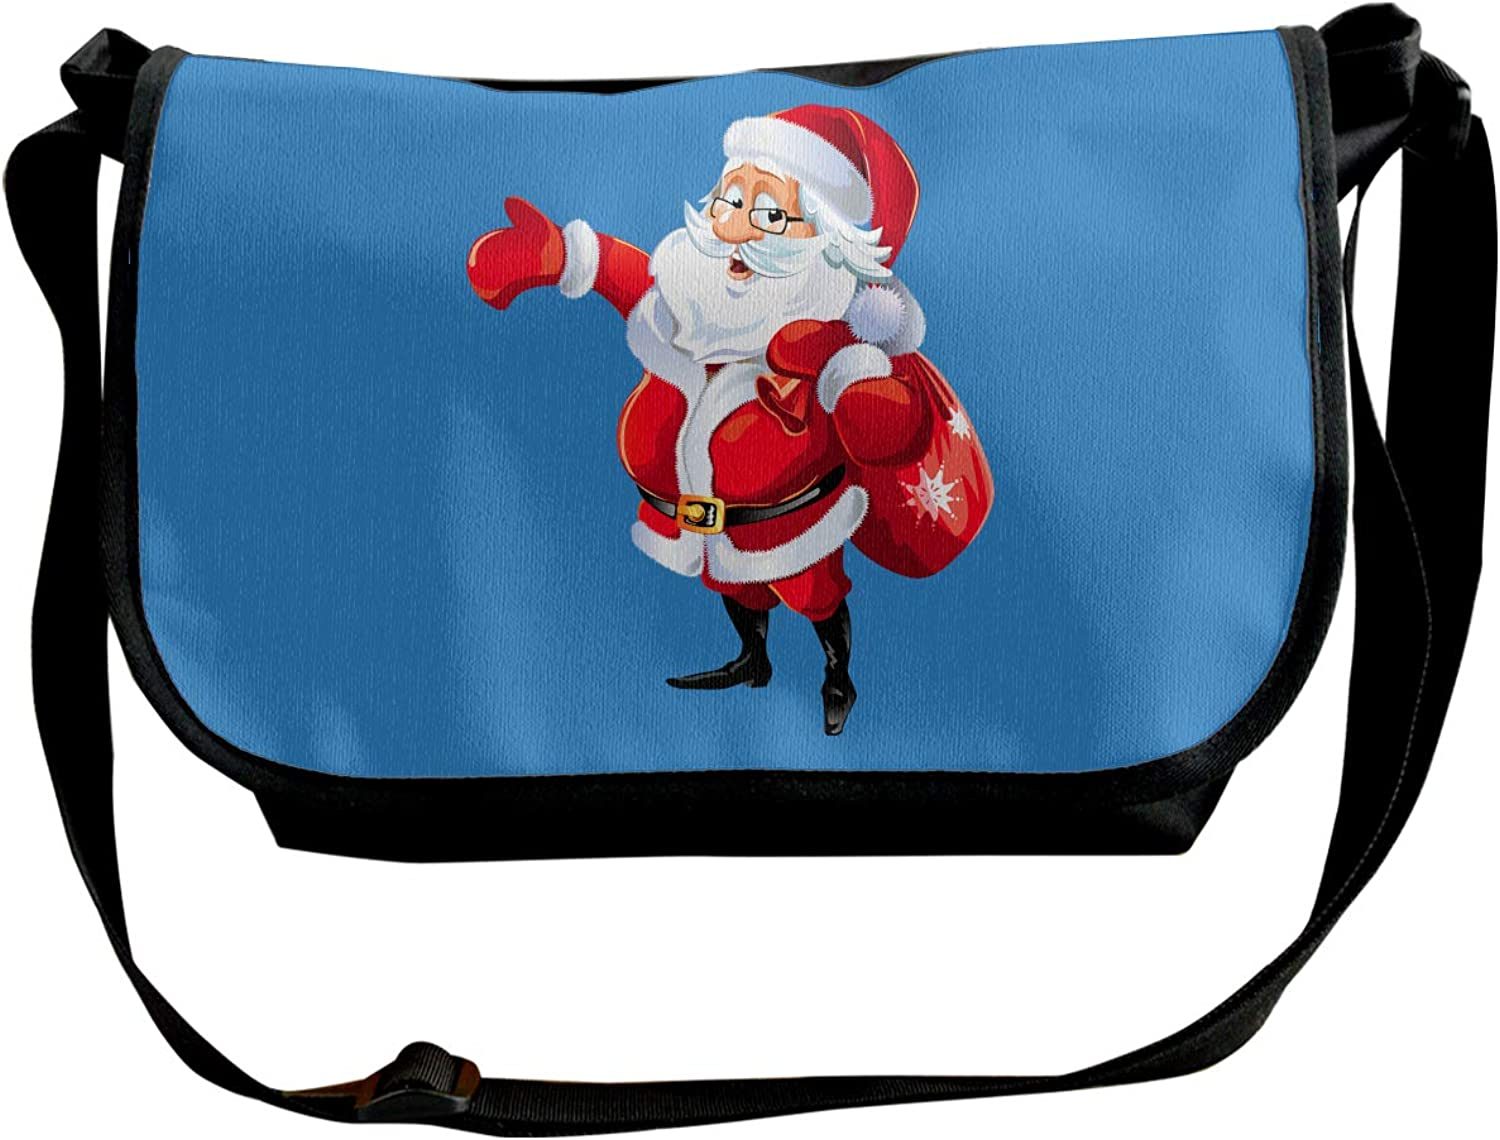 Single Shoulder Pack Santa Claus Christmas Hiking Bag Single Shoulder for Women